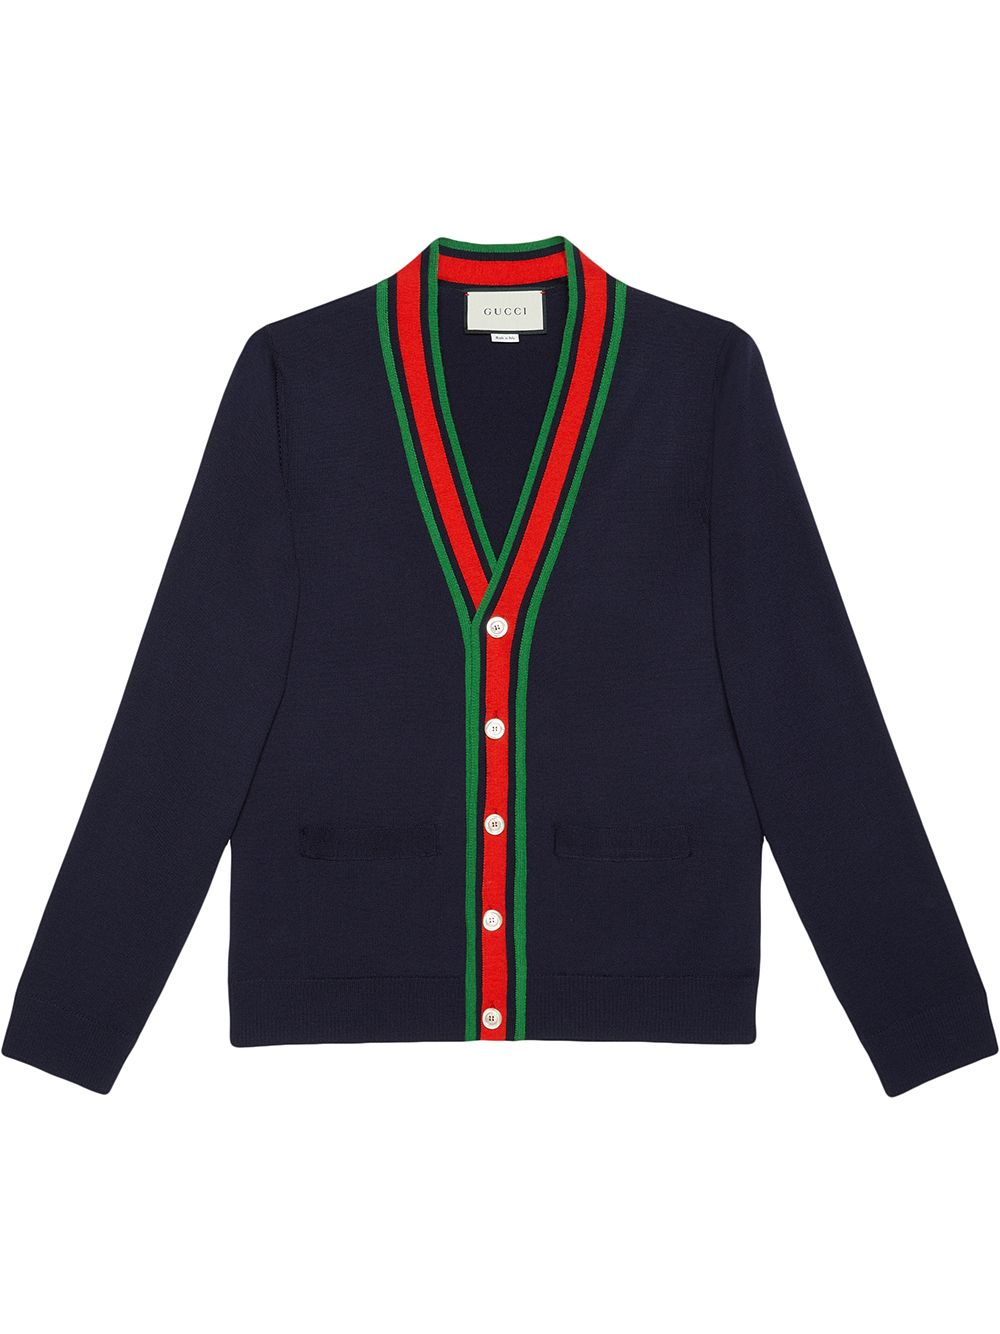 dark blue knit wool cardigan features a green, blue and red Gucci Web trim  GUCCI |  | 576806-XKAUL4548